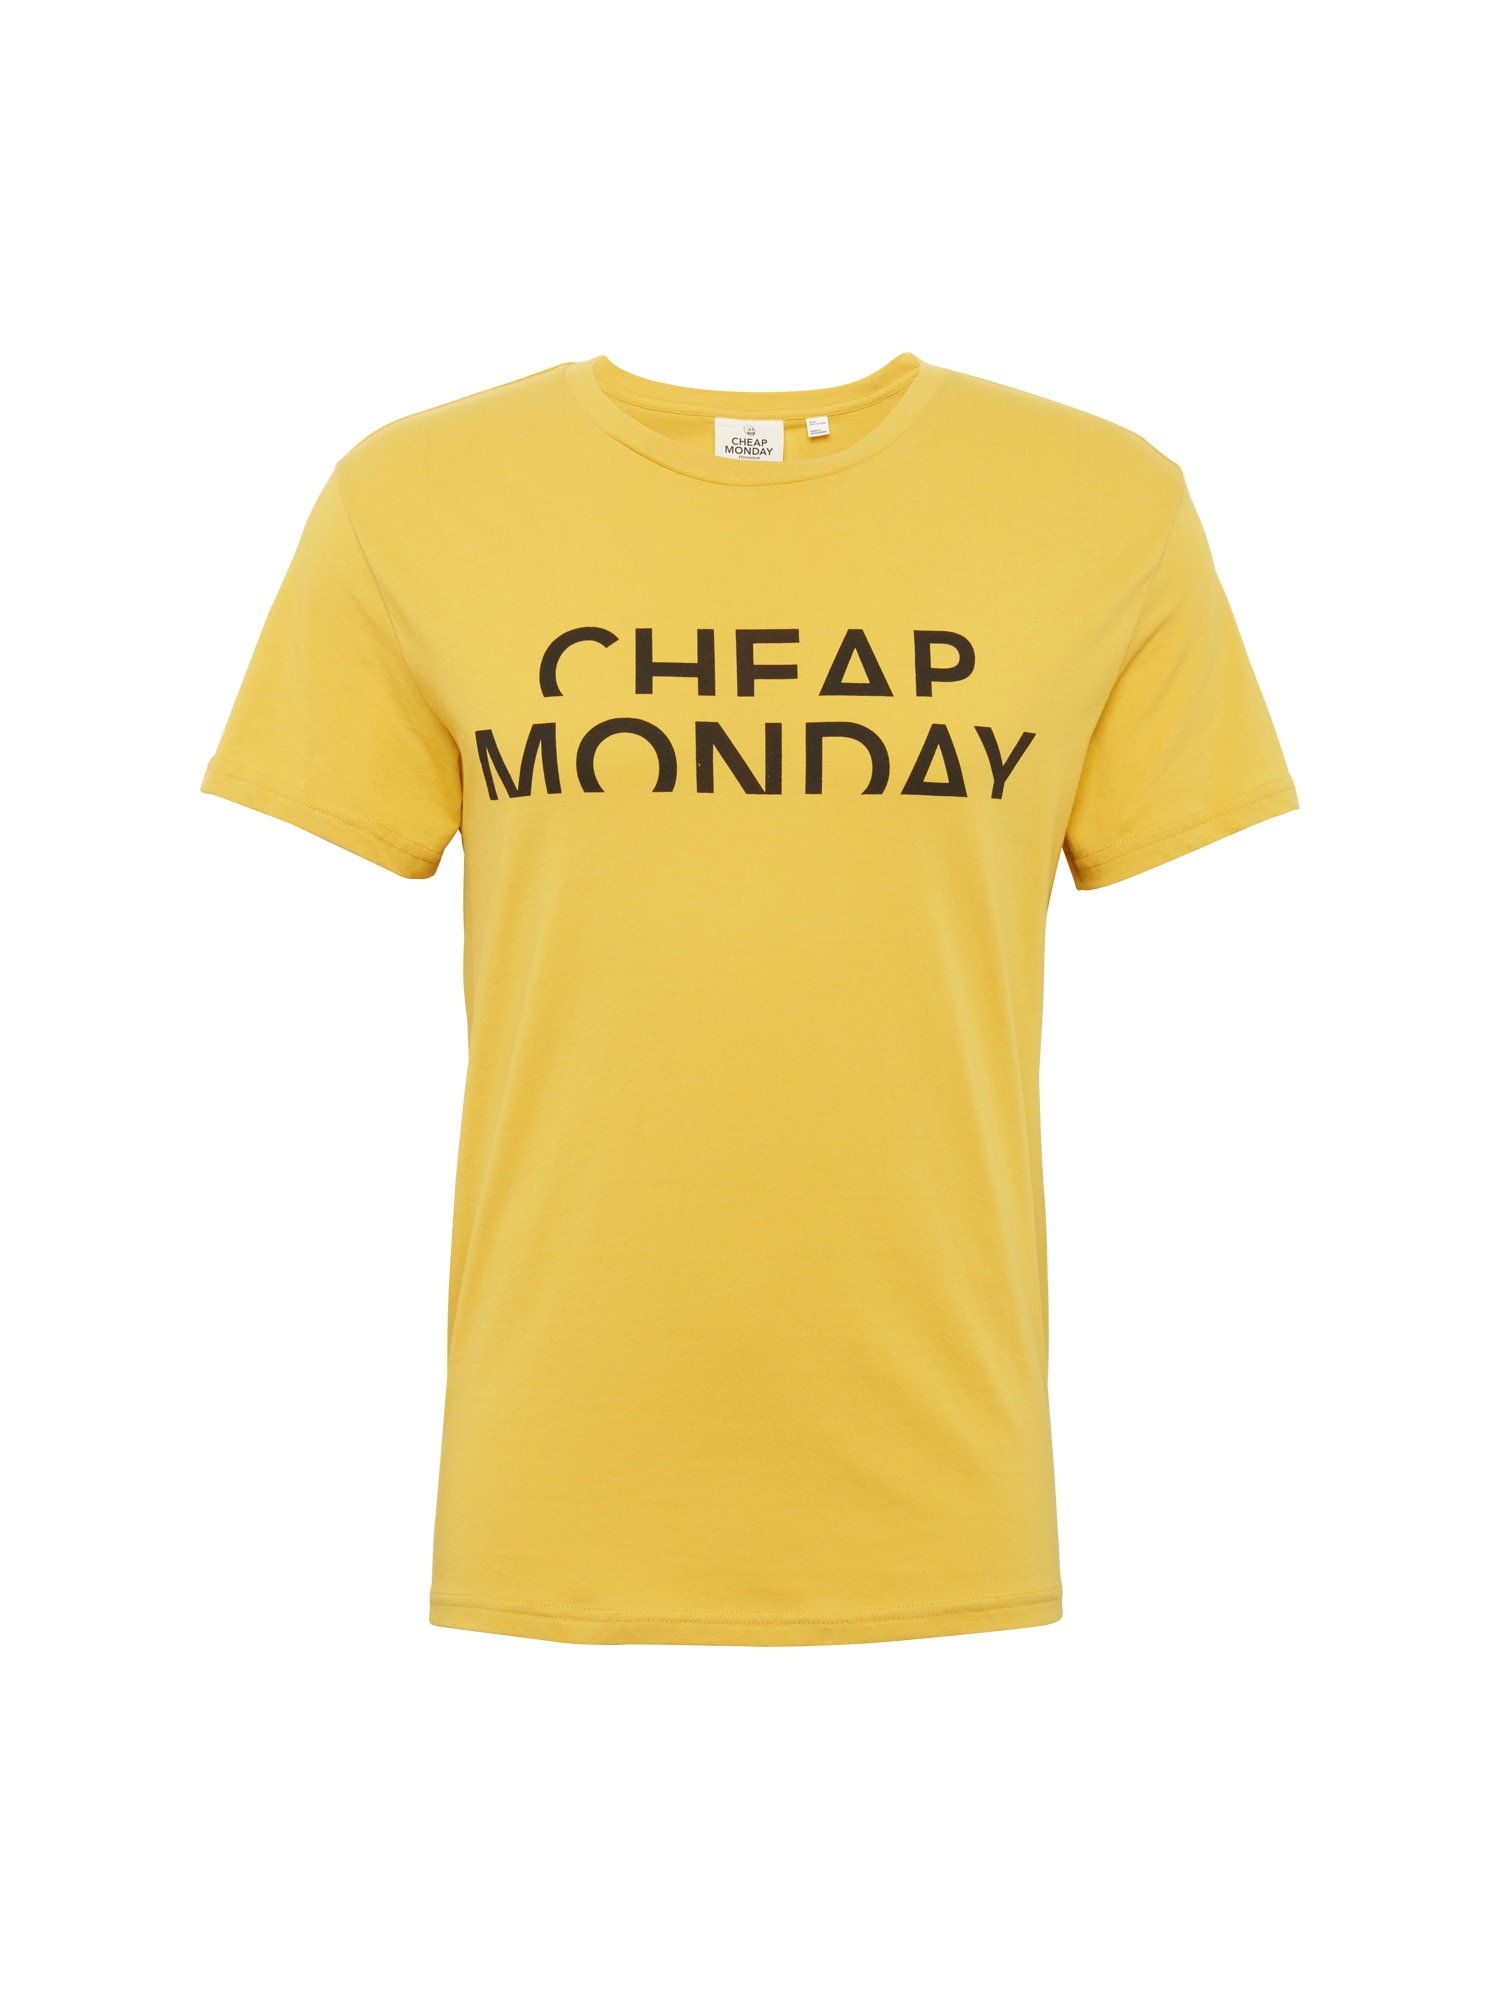 CHEAP MONDAY Heren Shirt Standard tee Spliced cheap mosterd zwart